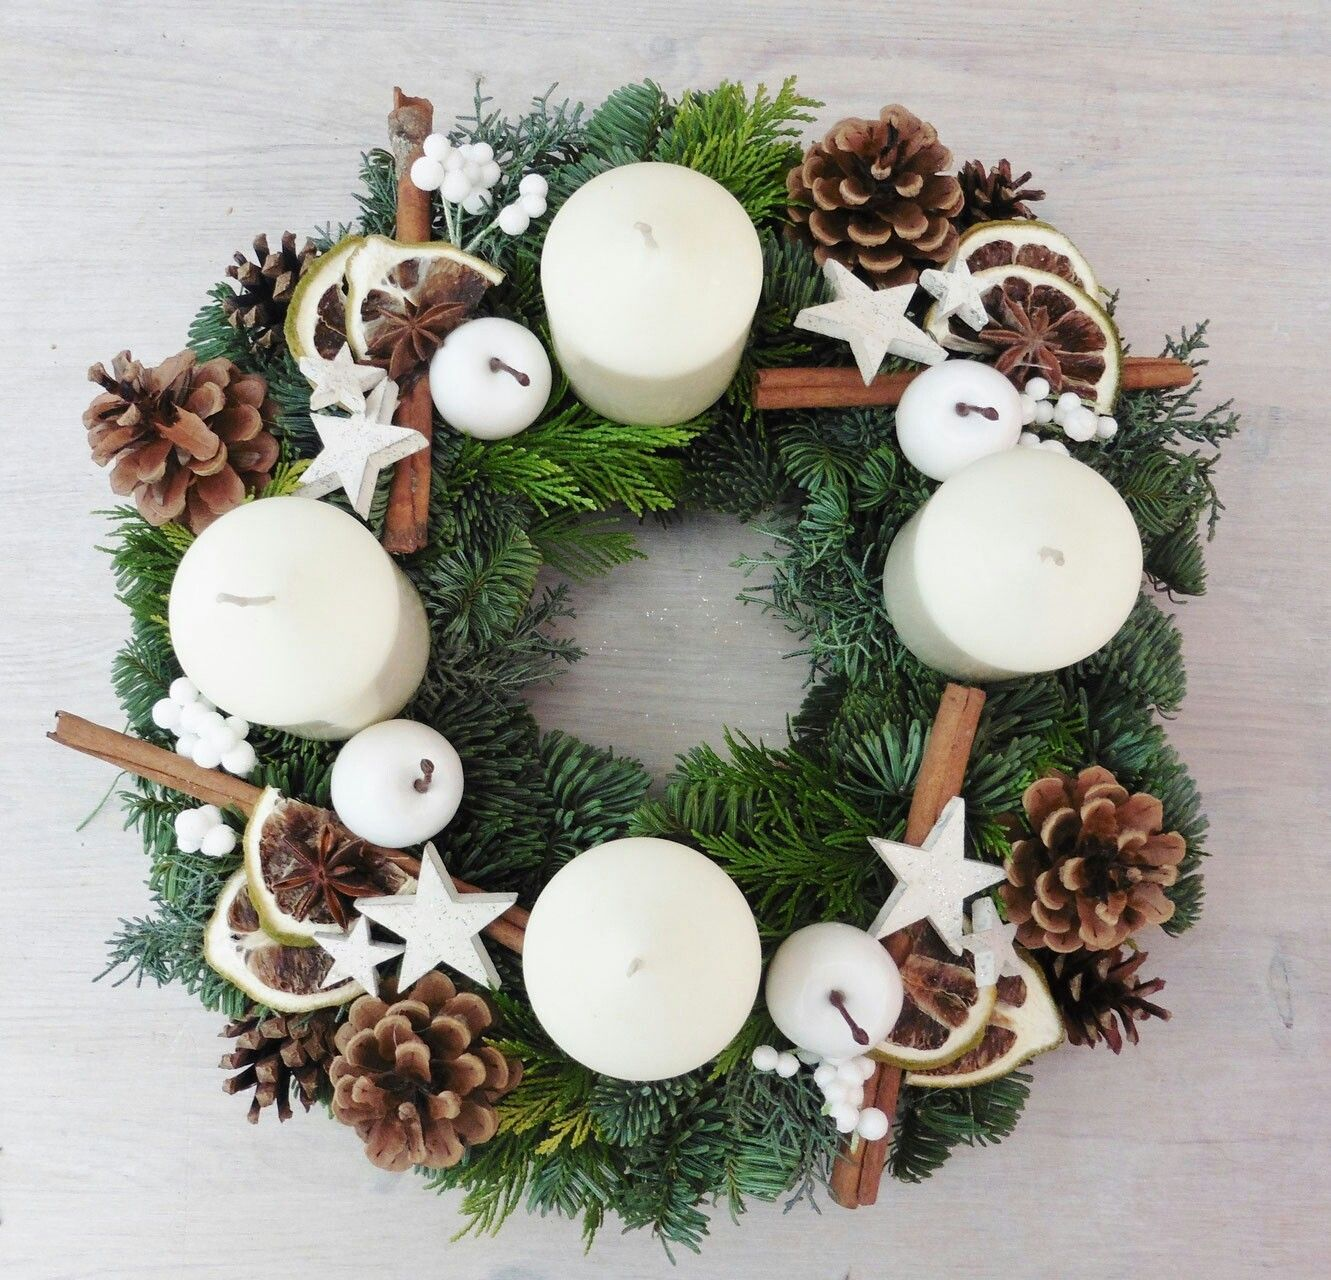 Advent julkrans (With images) Christmas advent wreath